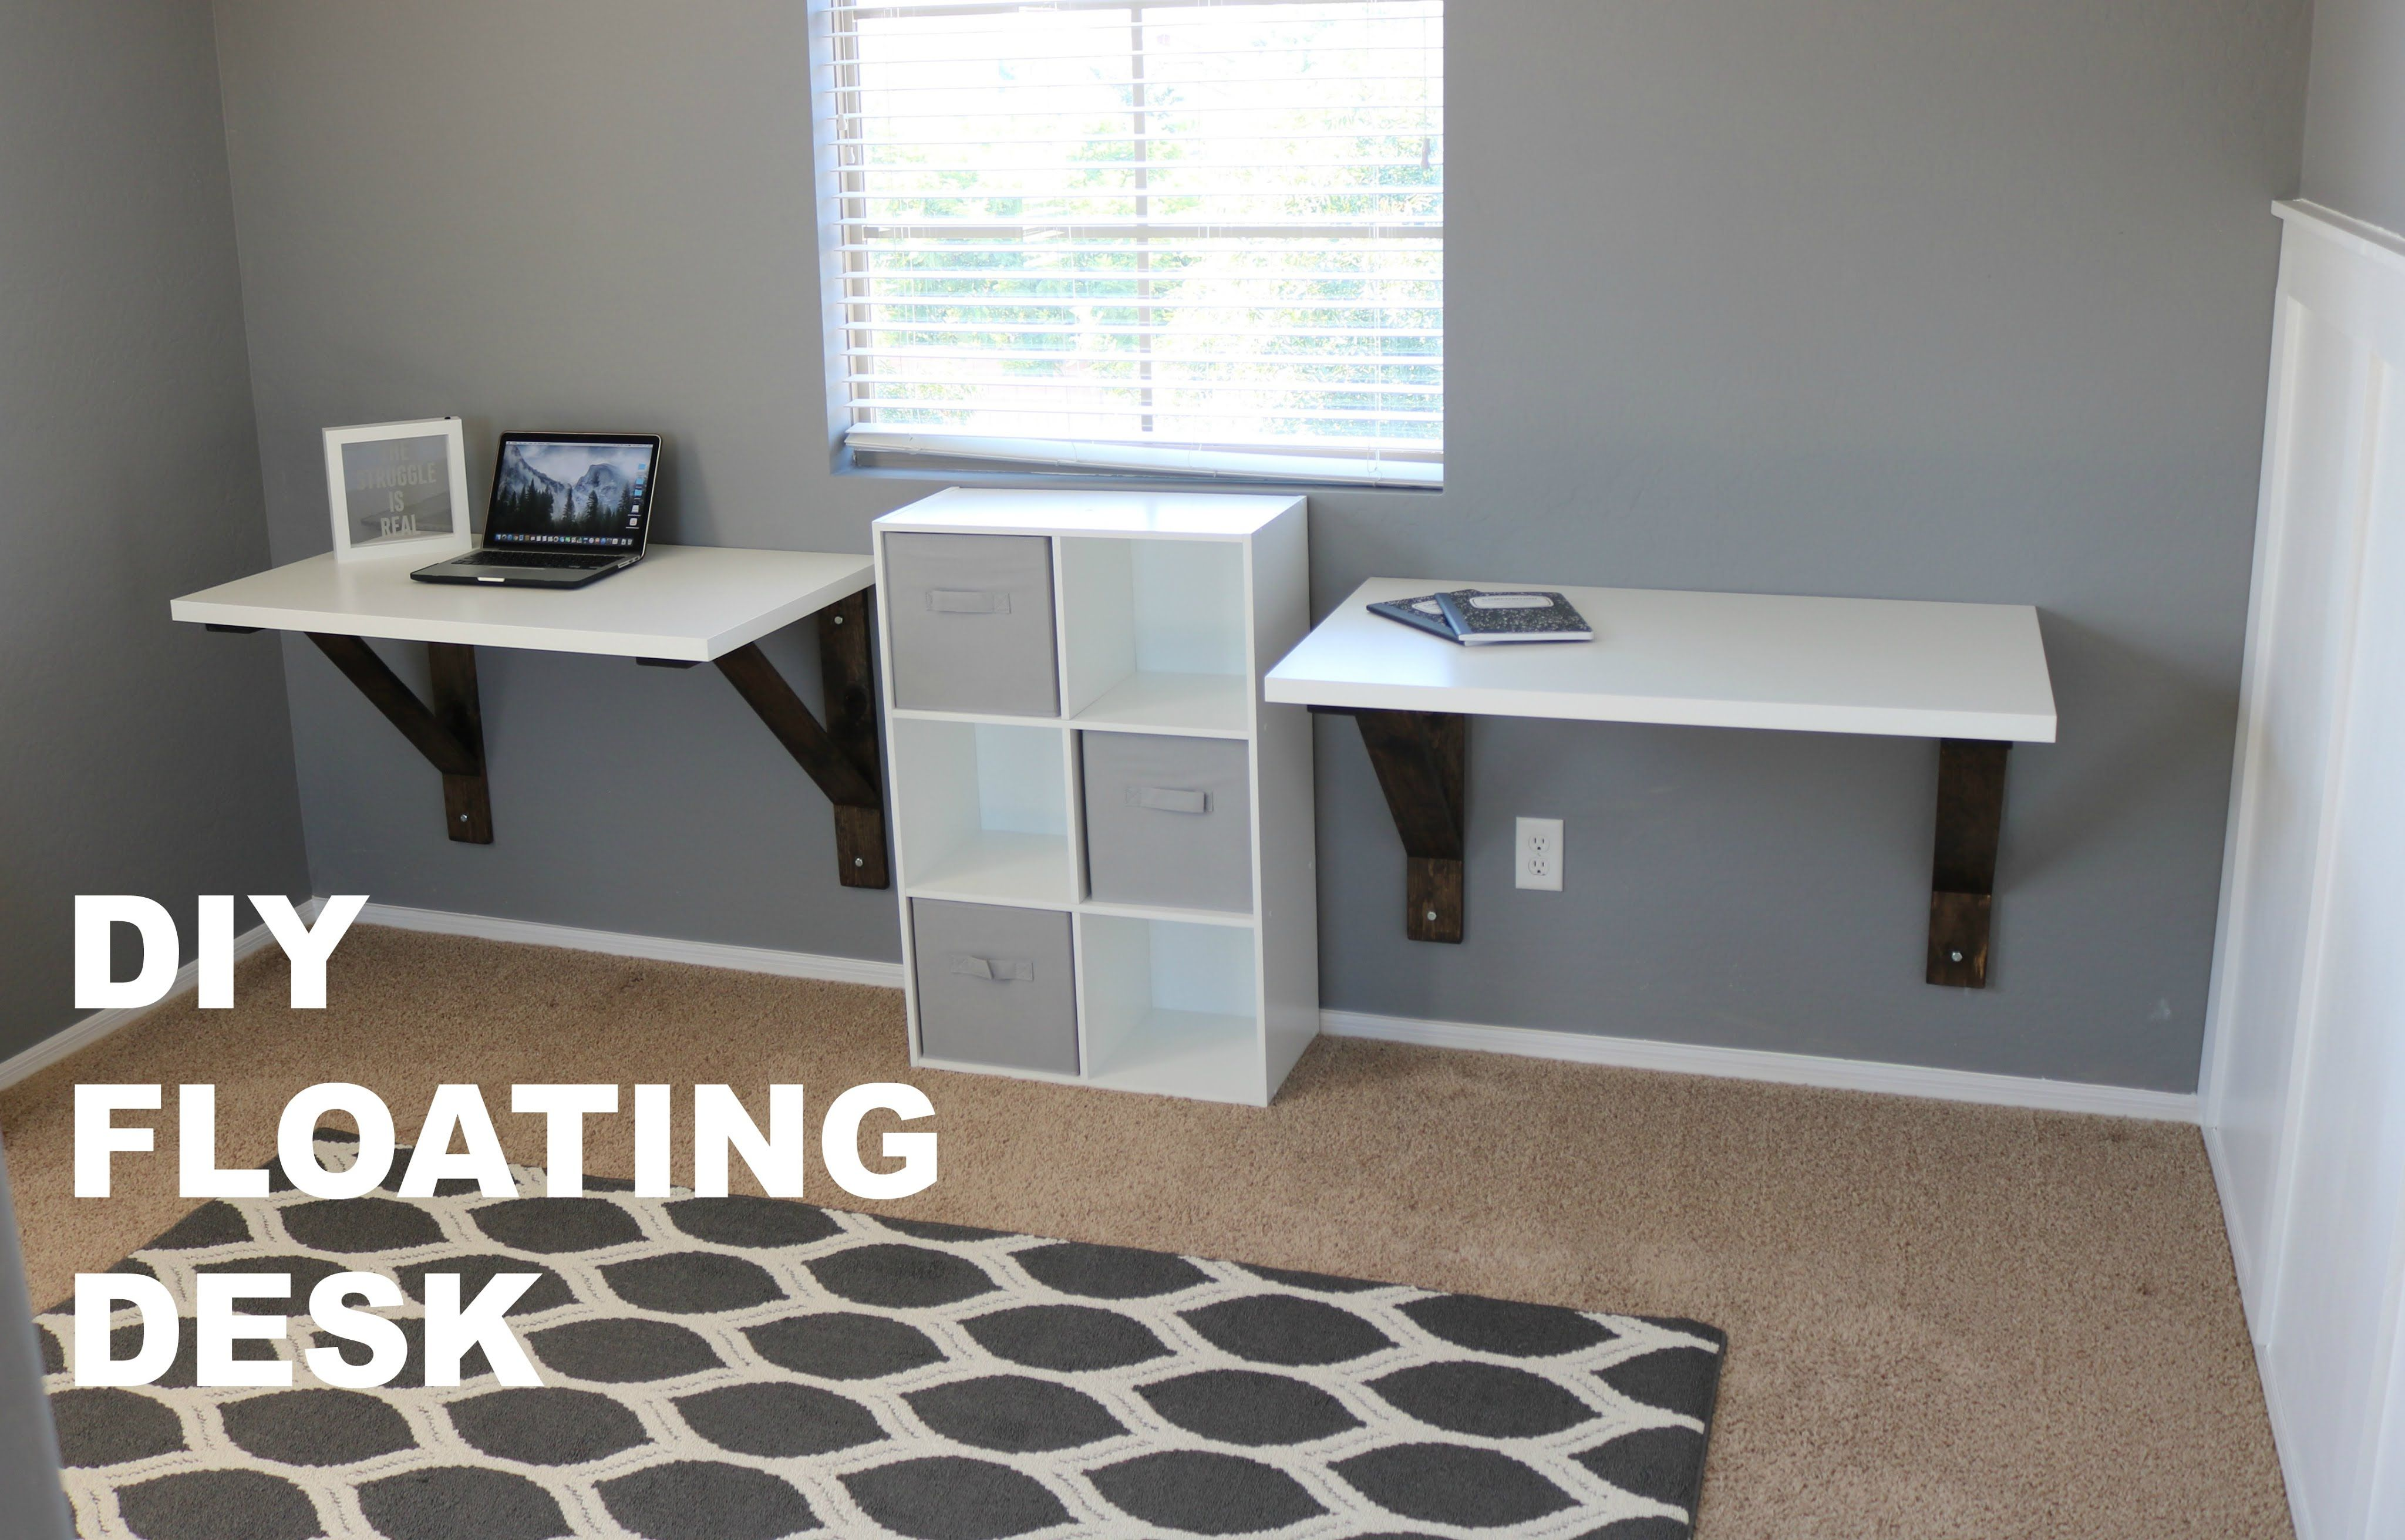 This Was My Build Of The Custom Floating Desks For My Home Office I Could Not Find Anything In Stores That I L Kids Rooms Diy Ikea Floating Desk Floating Desk